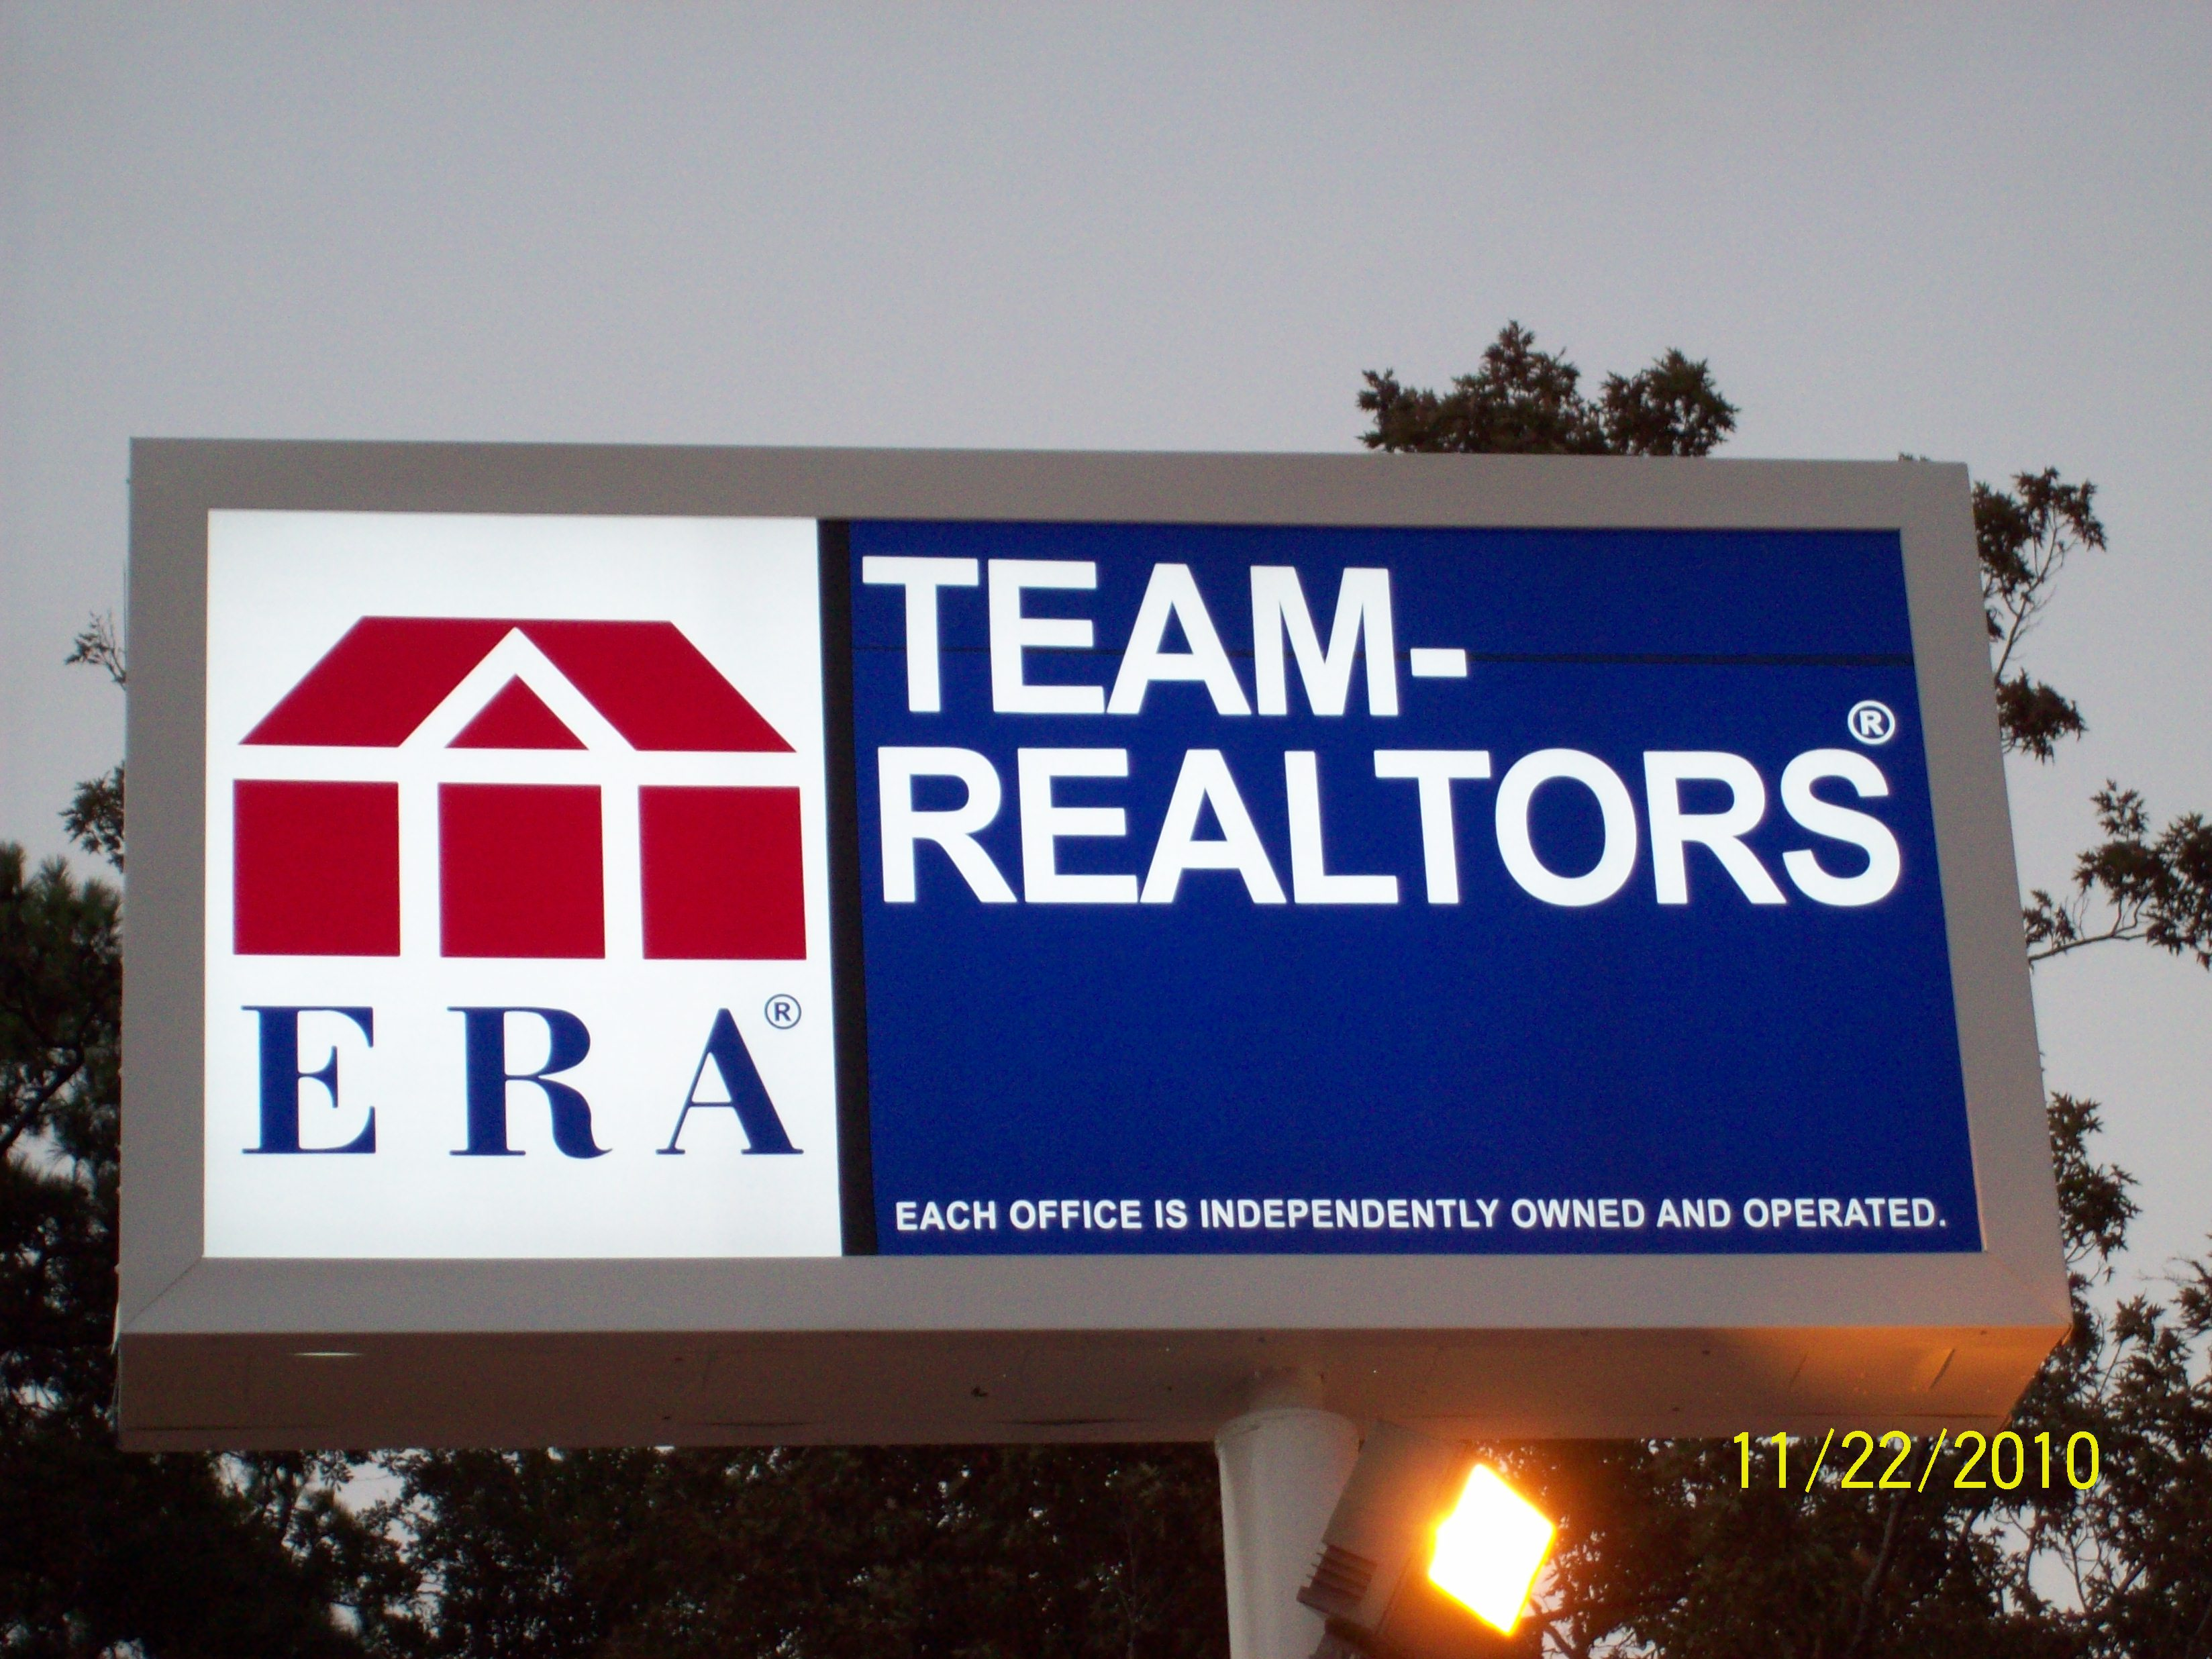 ERA Team Realtors - Pole Sign